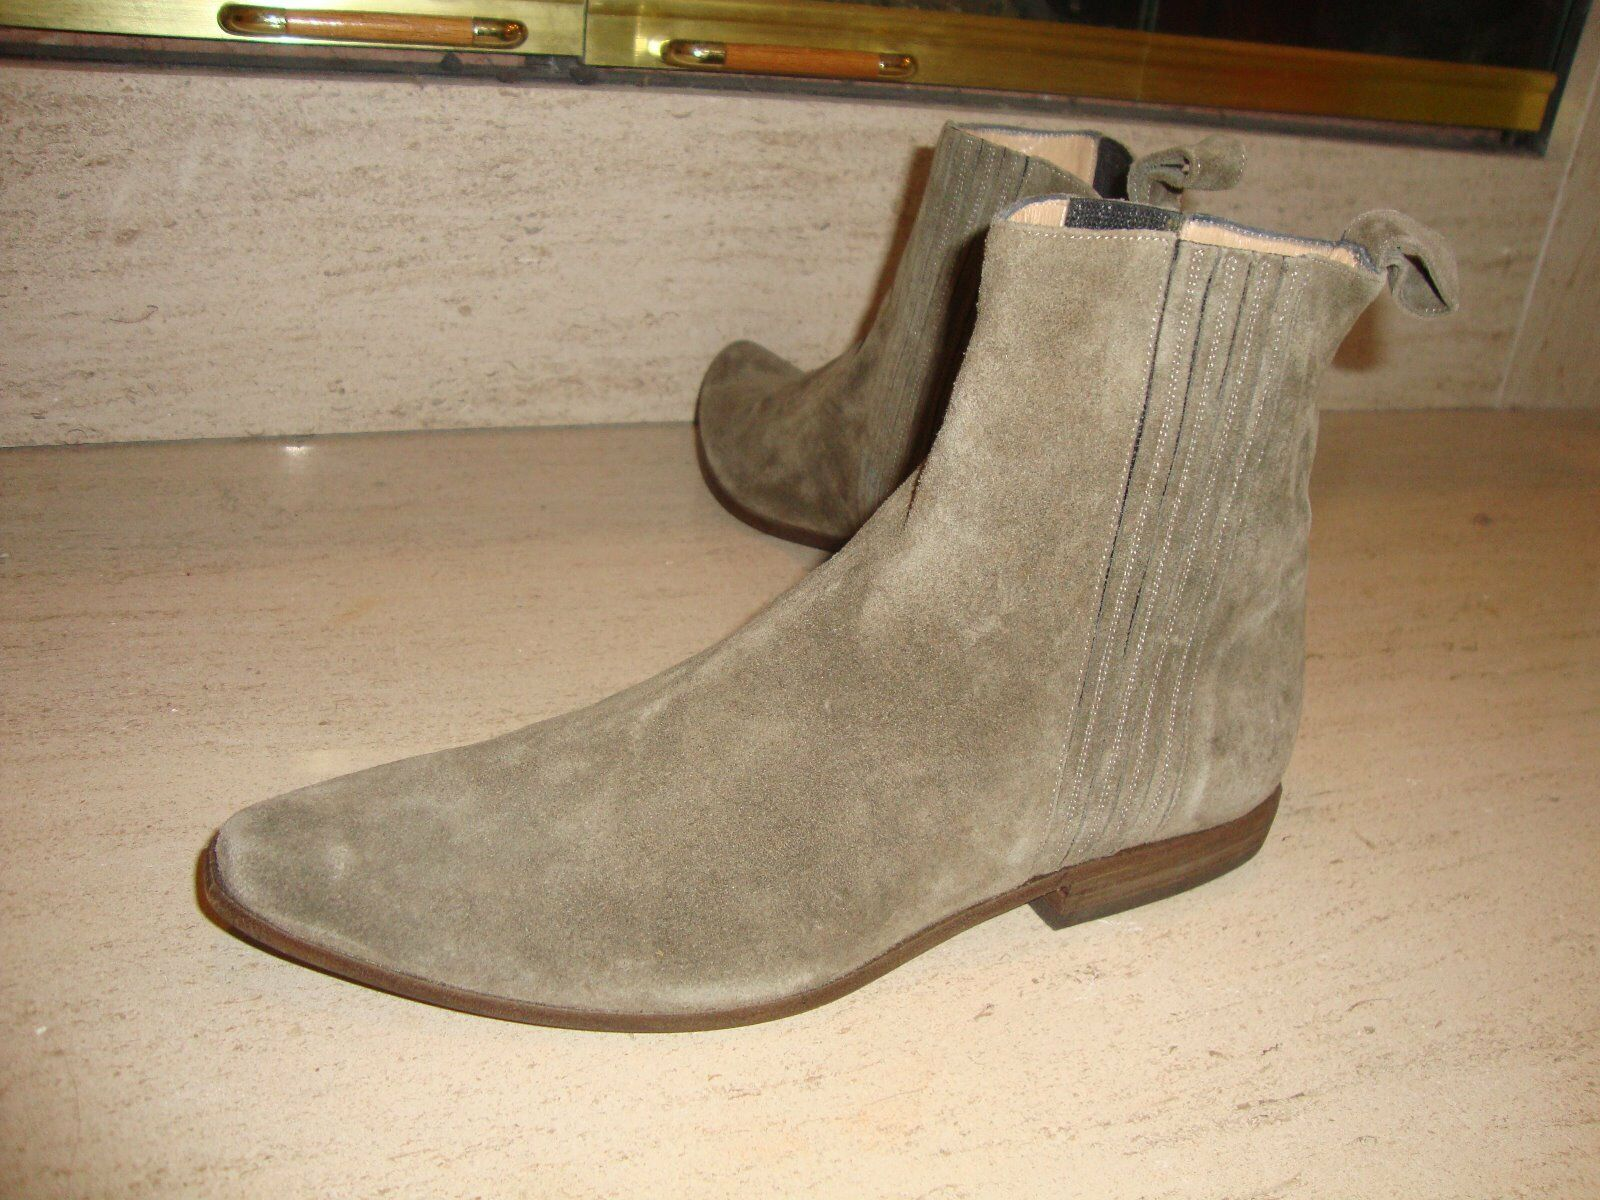 STYLISH NEW & SUPER RARE MICHEL PERRY OLIVE SUEDE ANKLE BOOTS (NWOB)